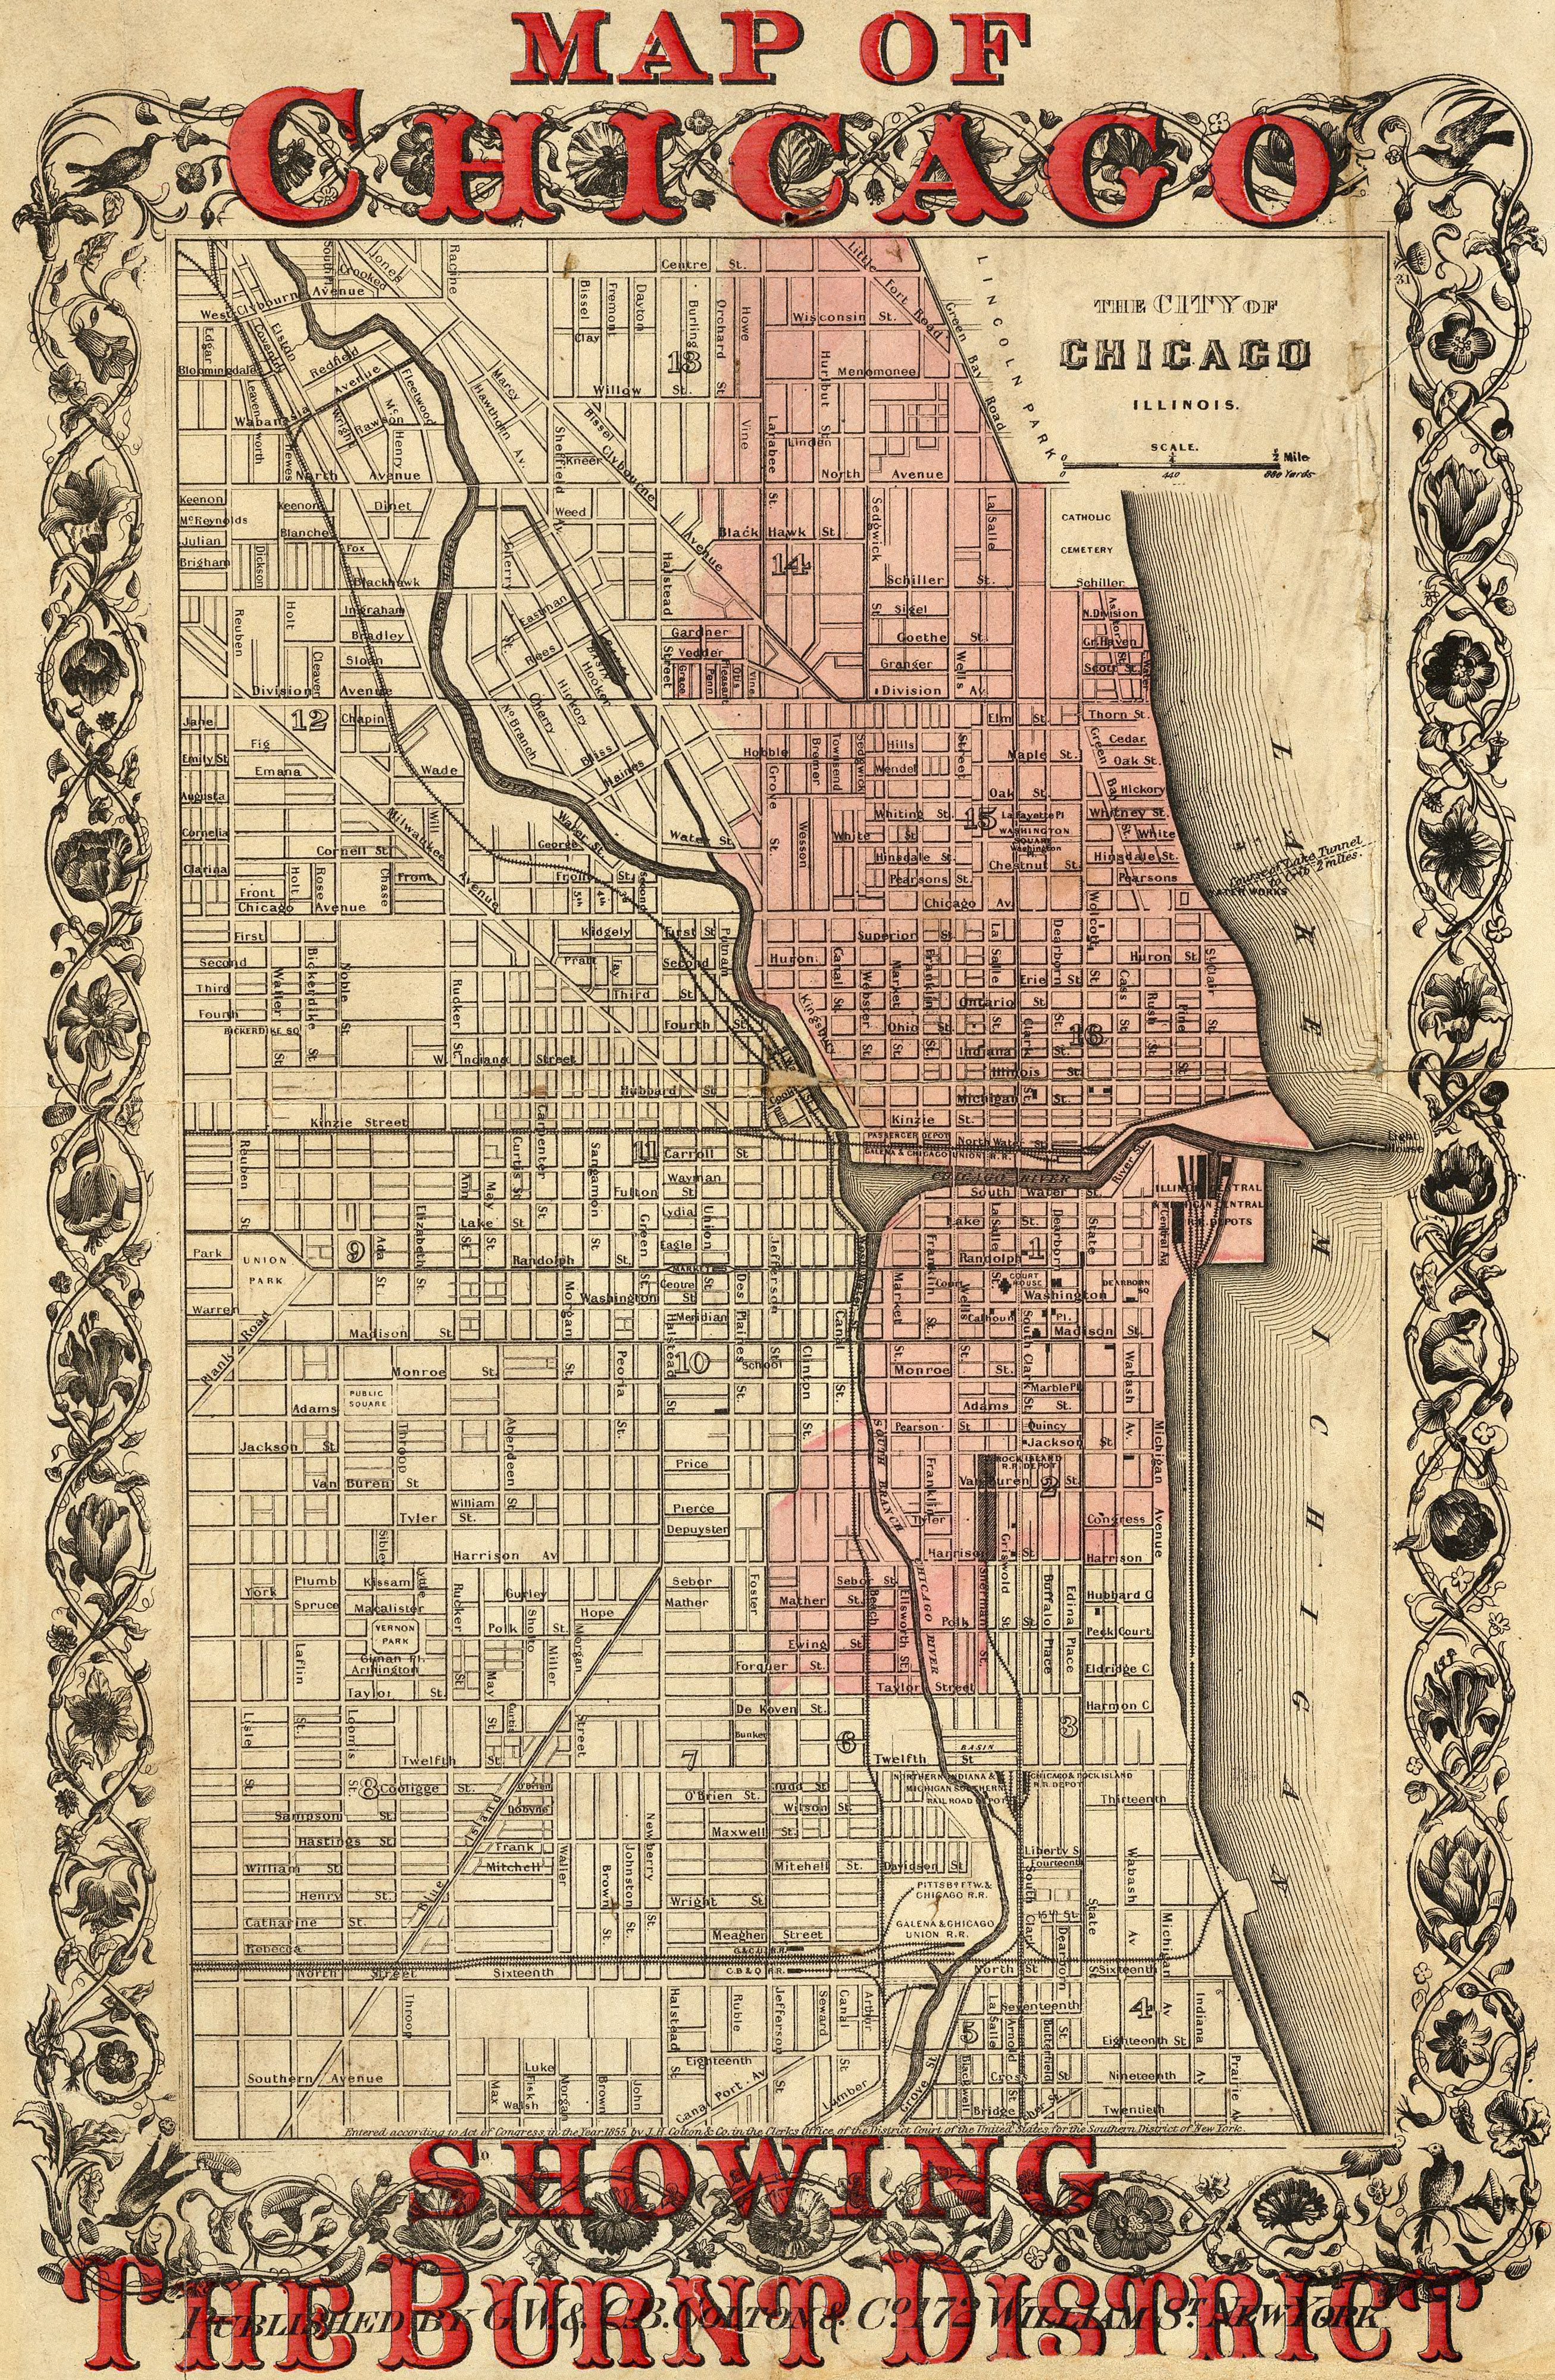 Map Of Chicago Showing The Burnt District - Chicago map of